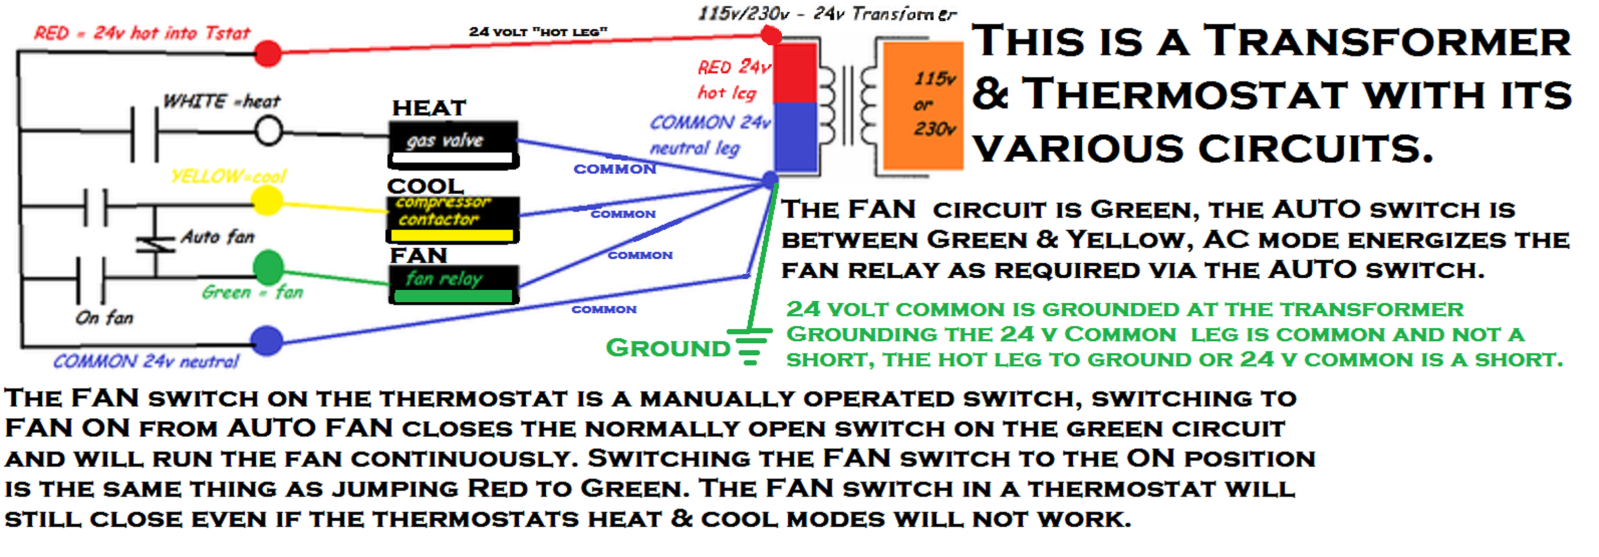 Heater Connected Red Relay Wire